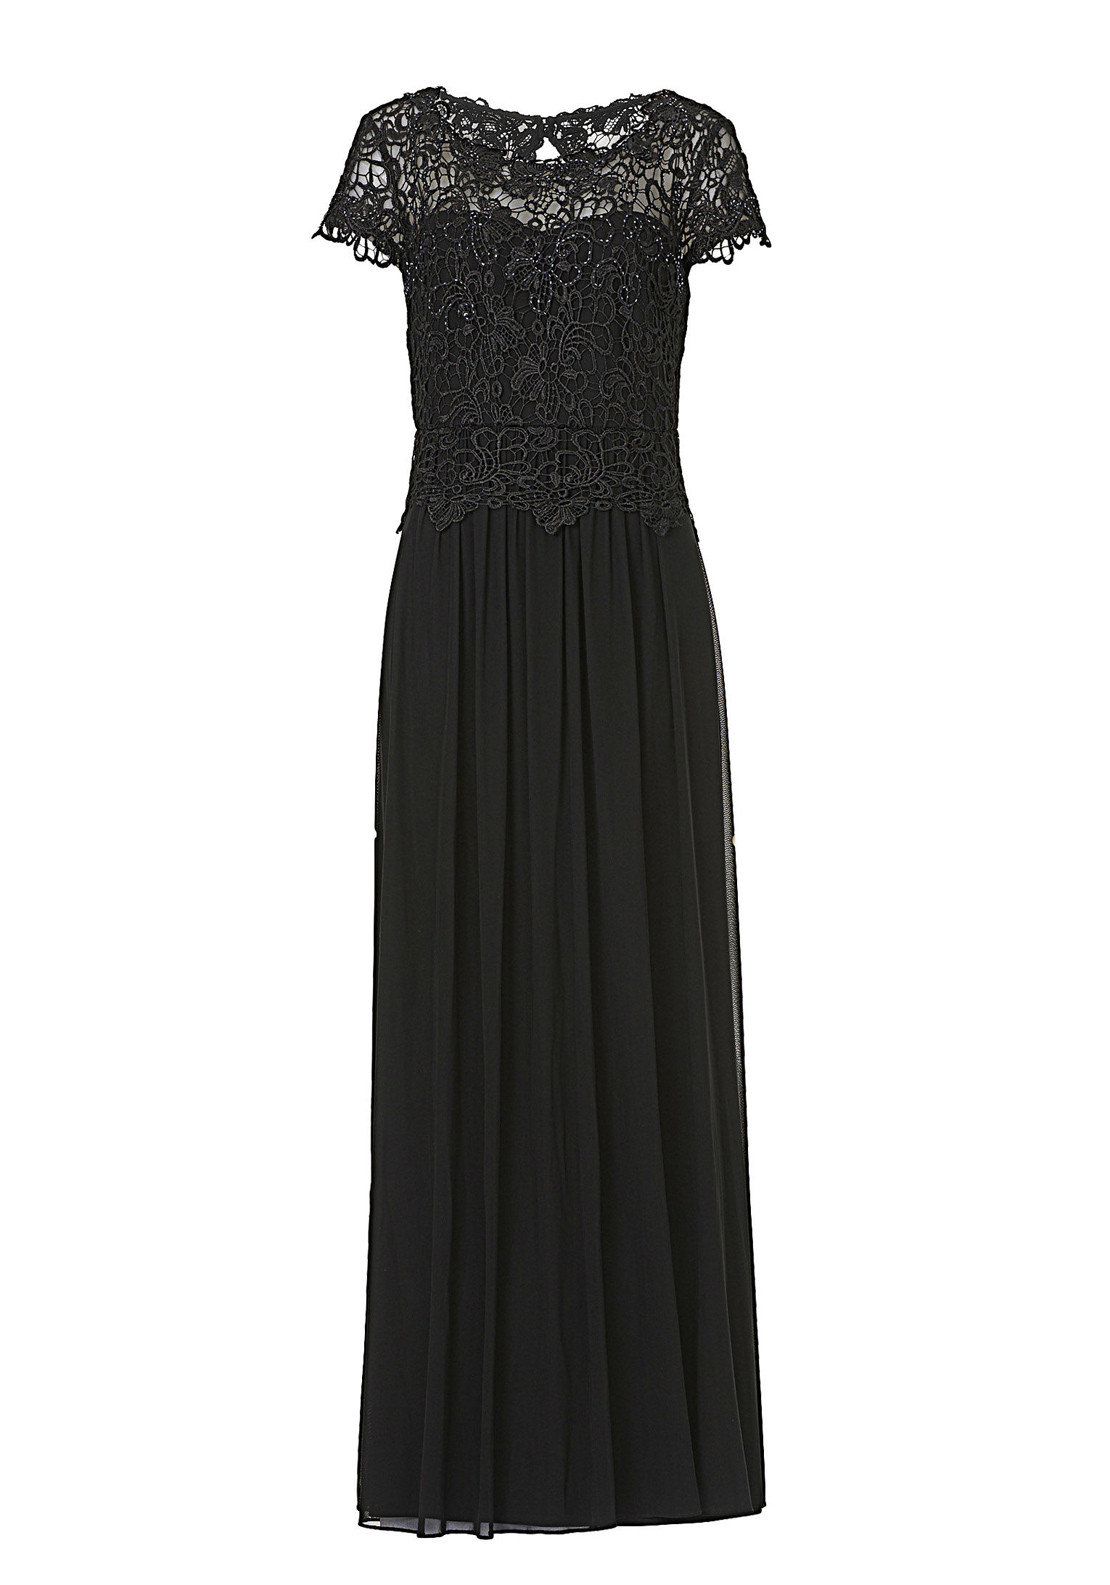 Vera Mont Embellished Lace Overlay Full Length Dress, Black